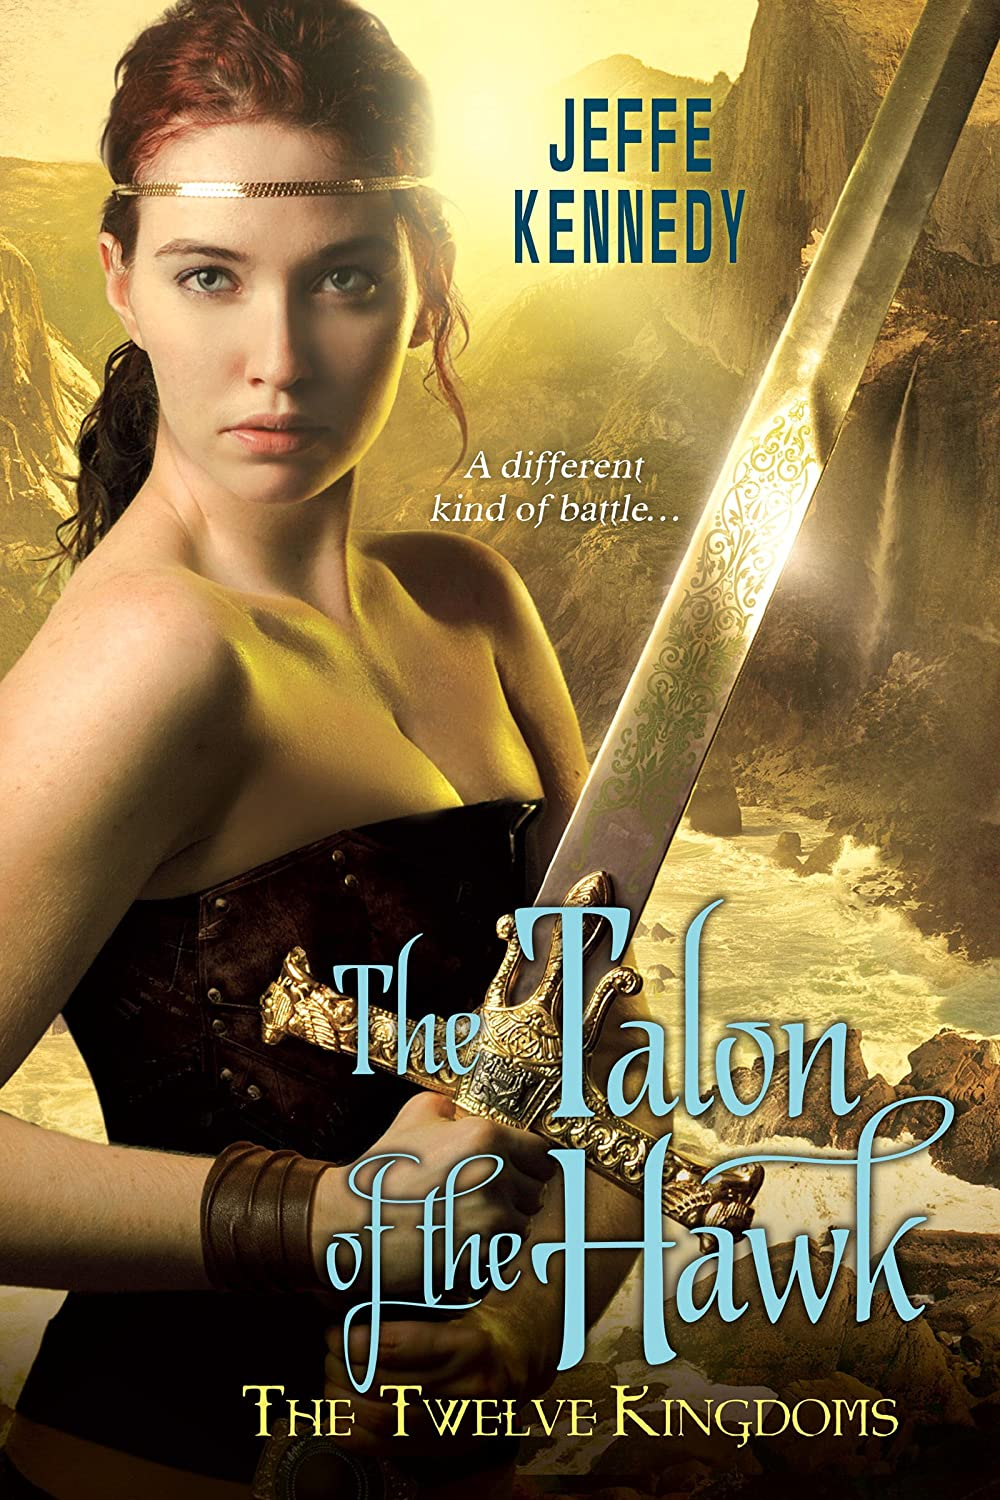 The Talon of the Hawk – Jeffe Kennedy – 5 stars